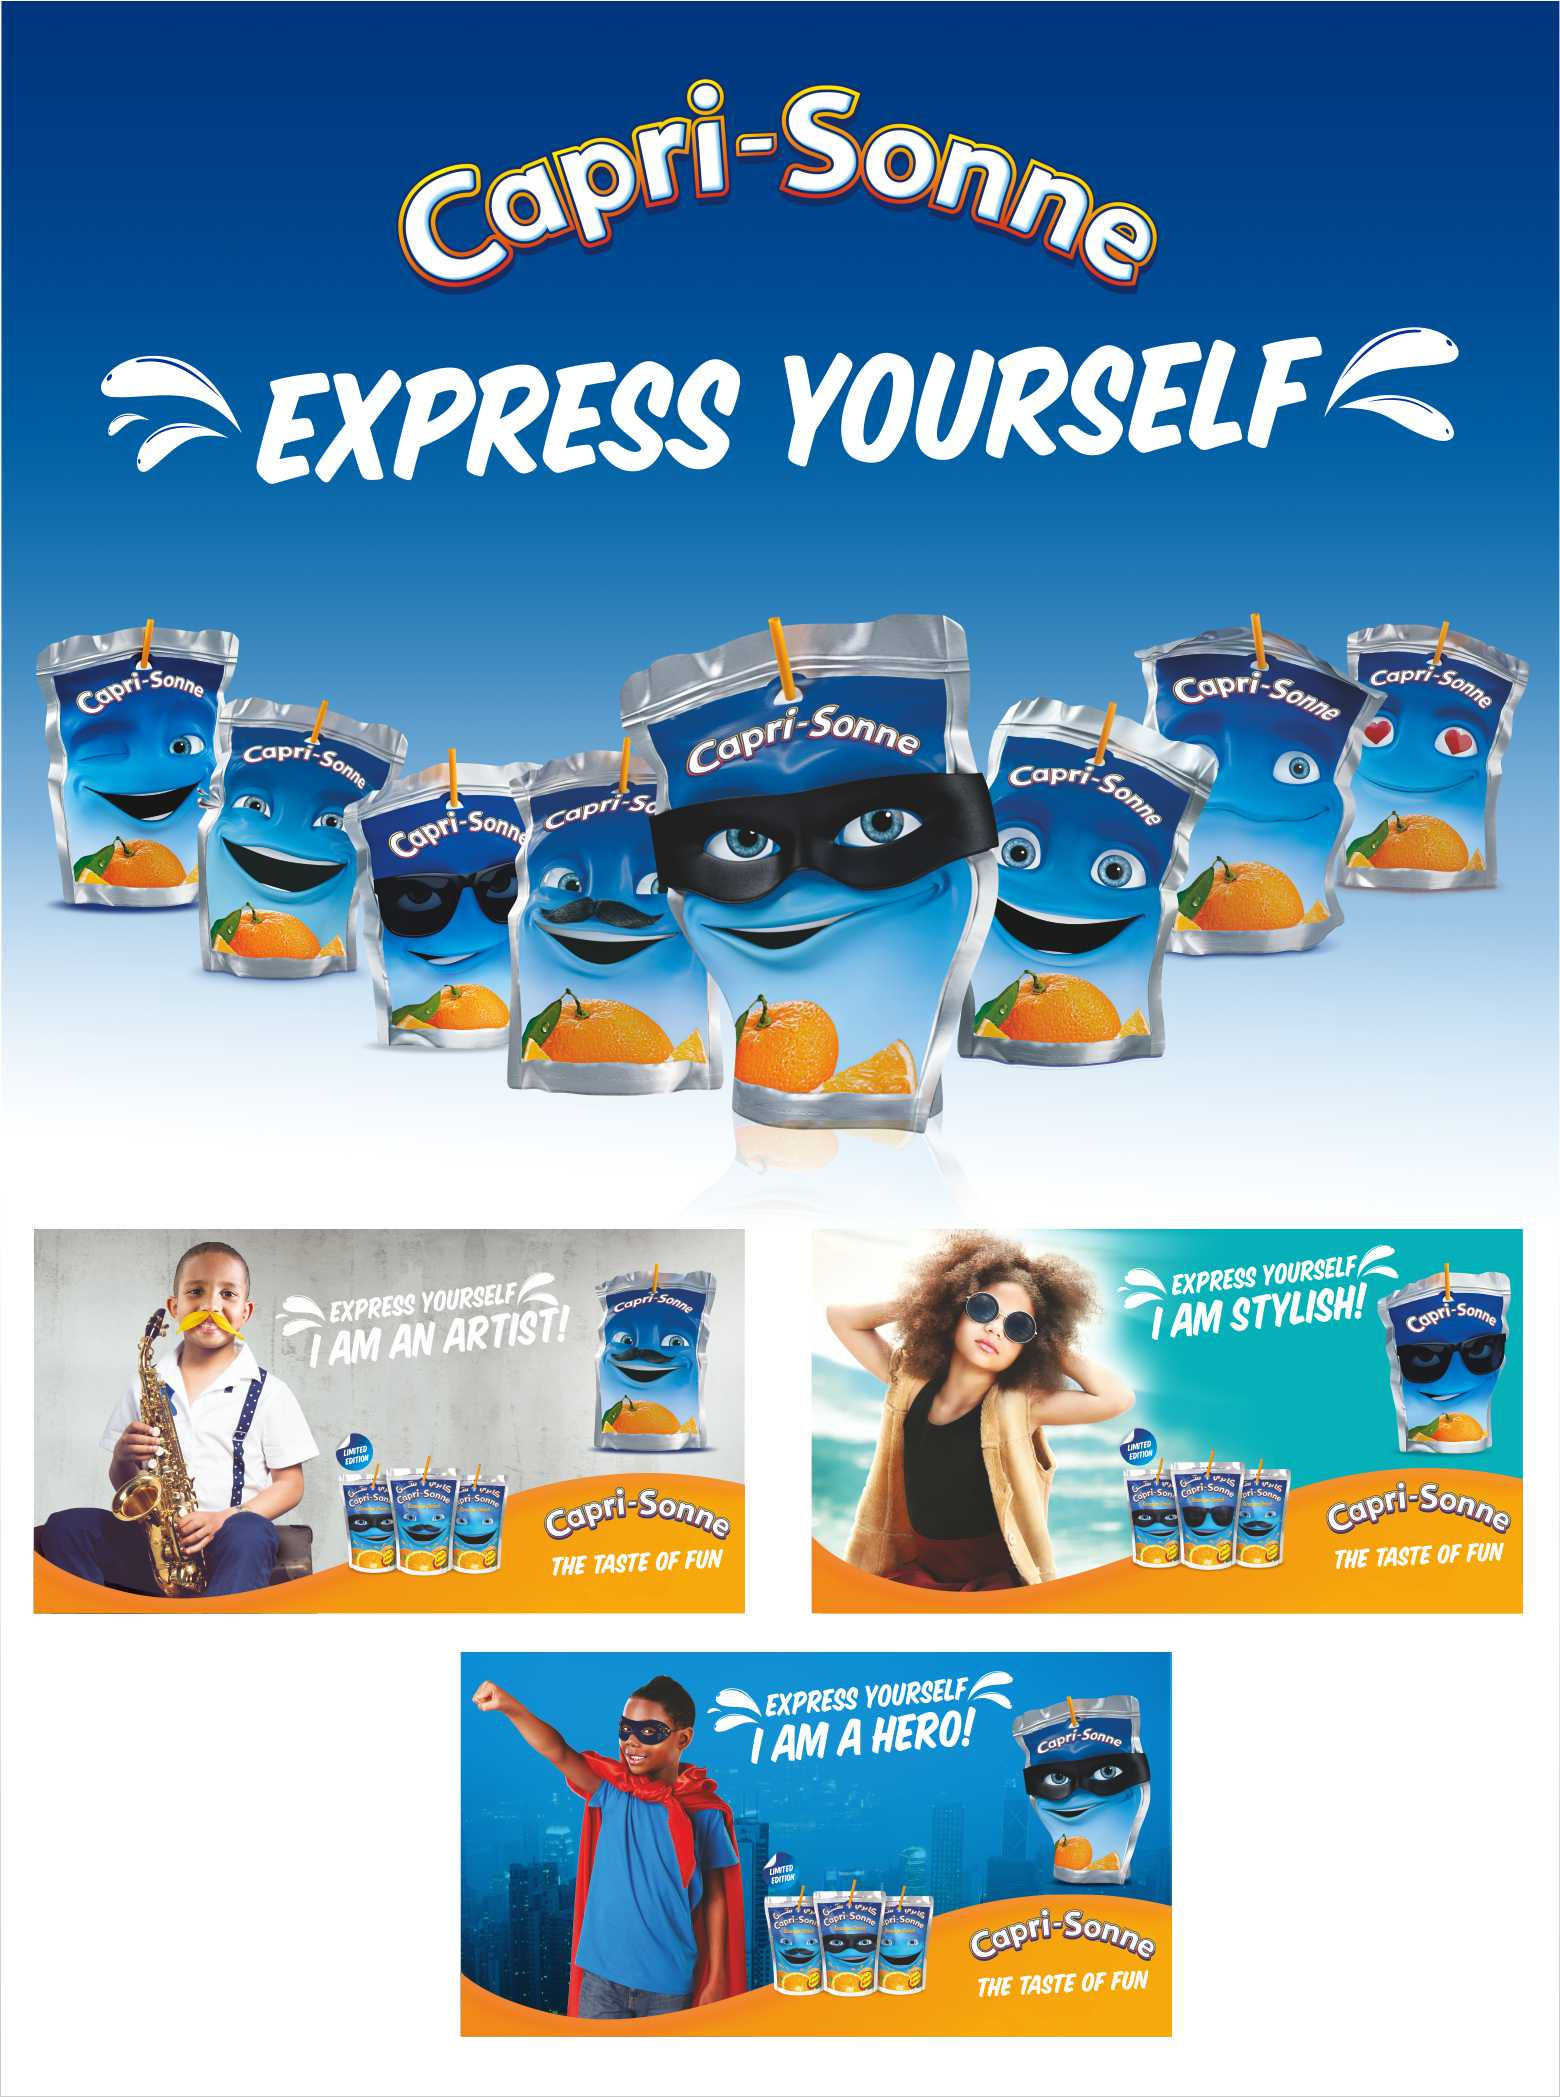 Children Express Themselves With Capri - Sonne Emoji Pouches (Pictures) - Brand Spur